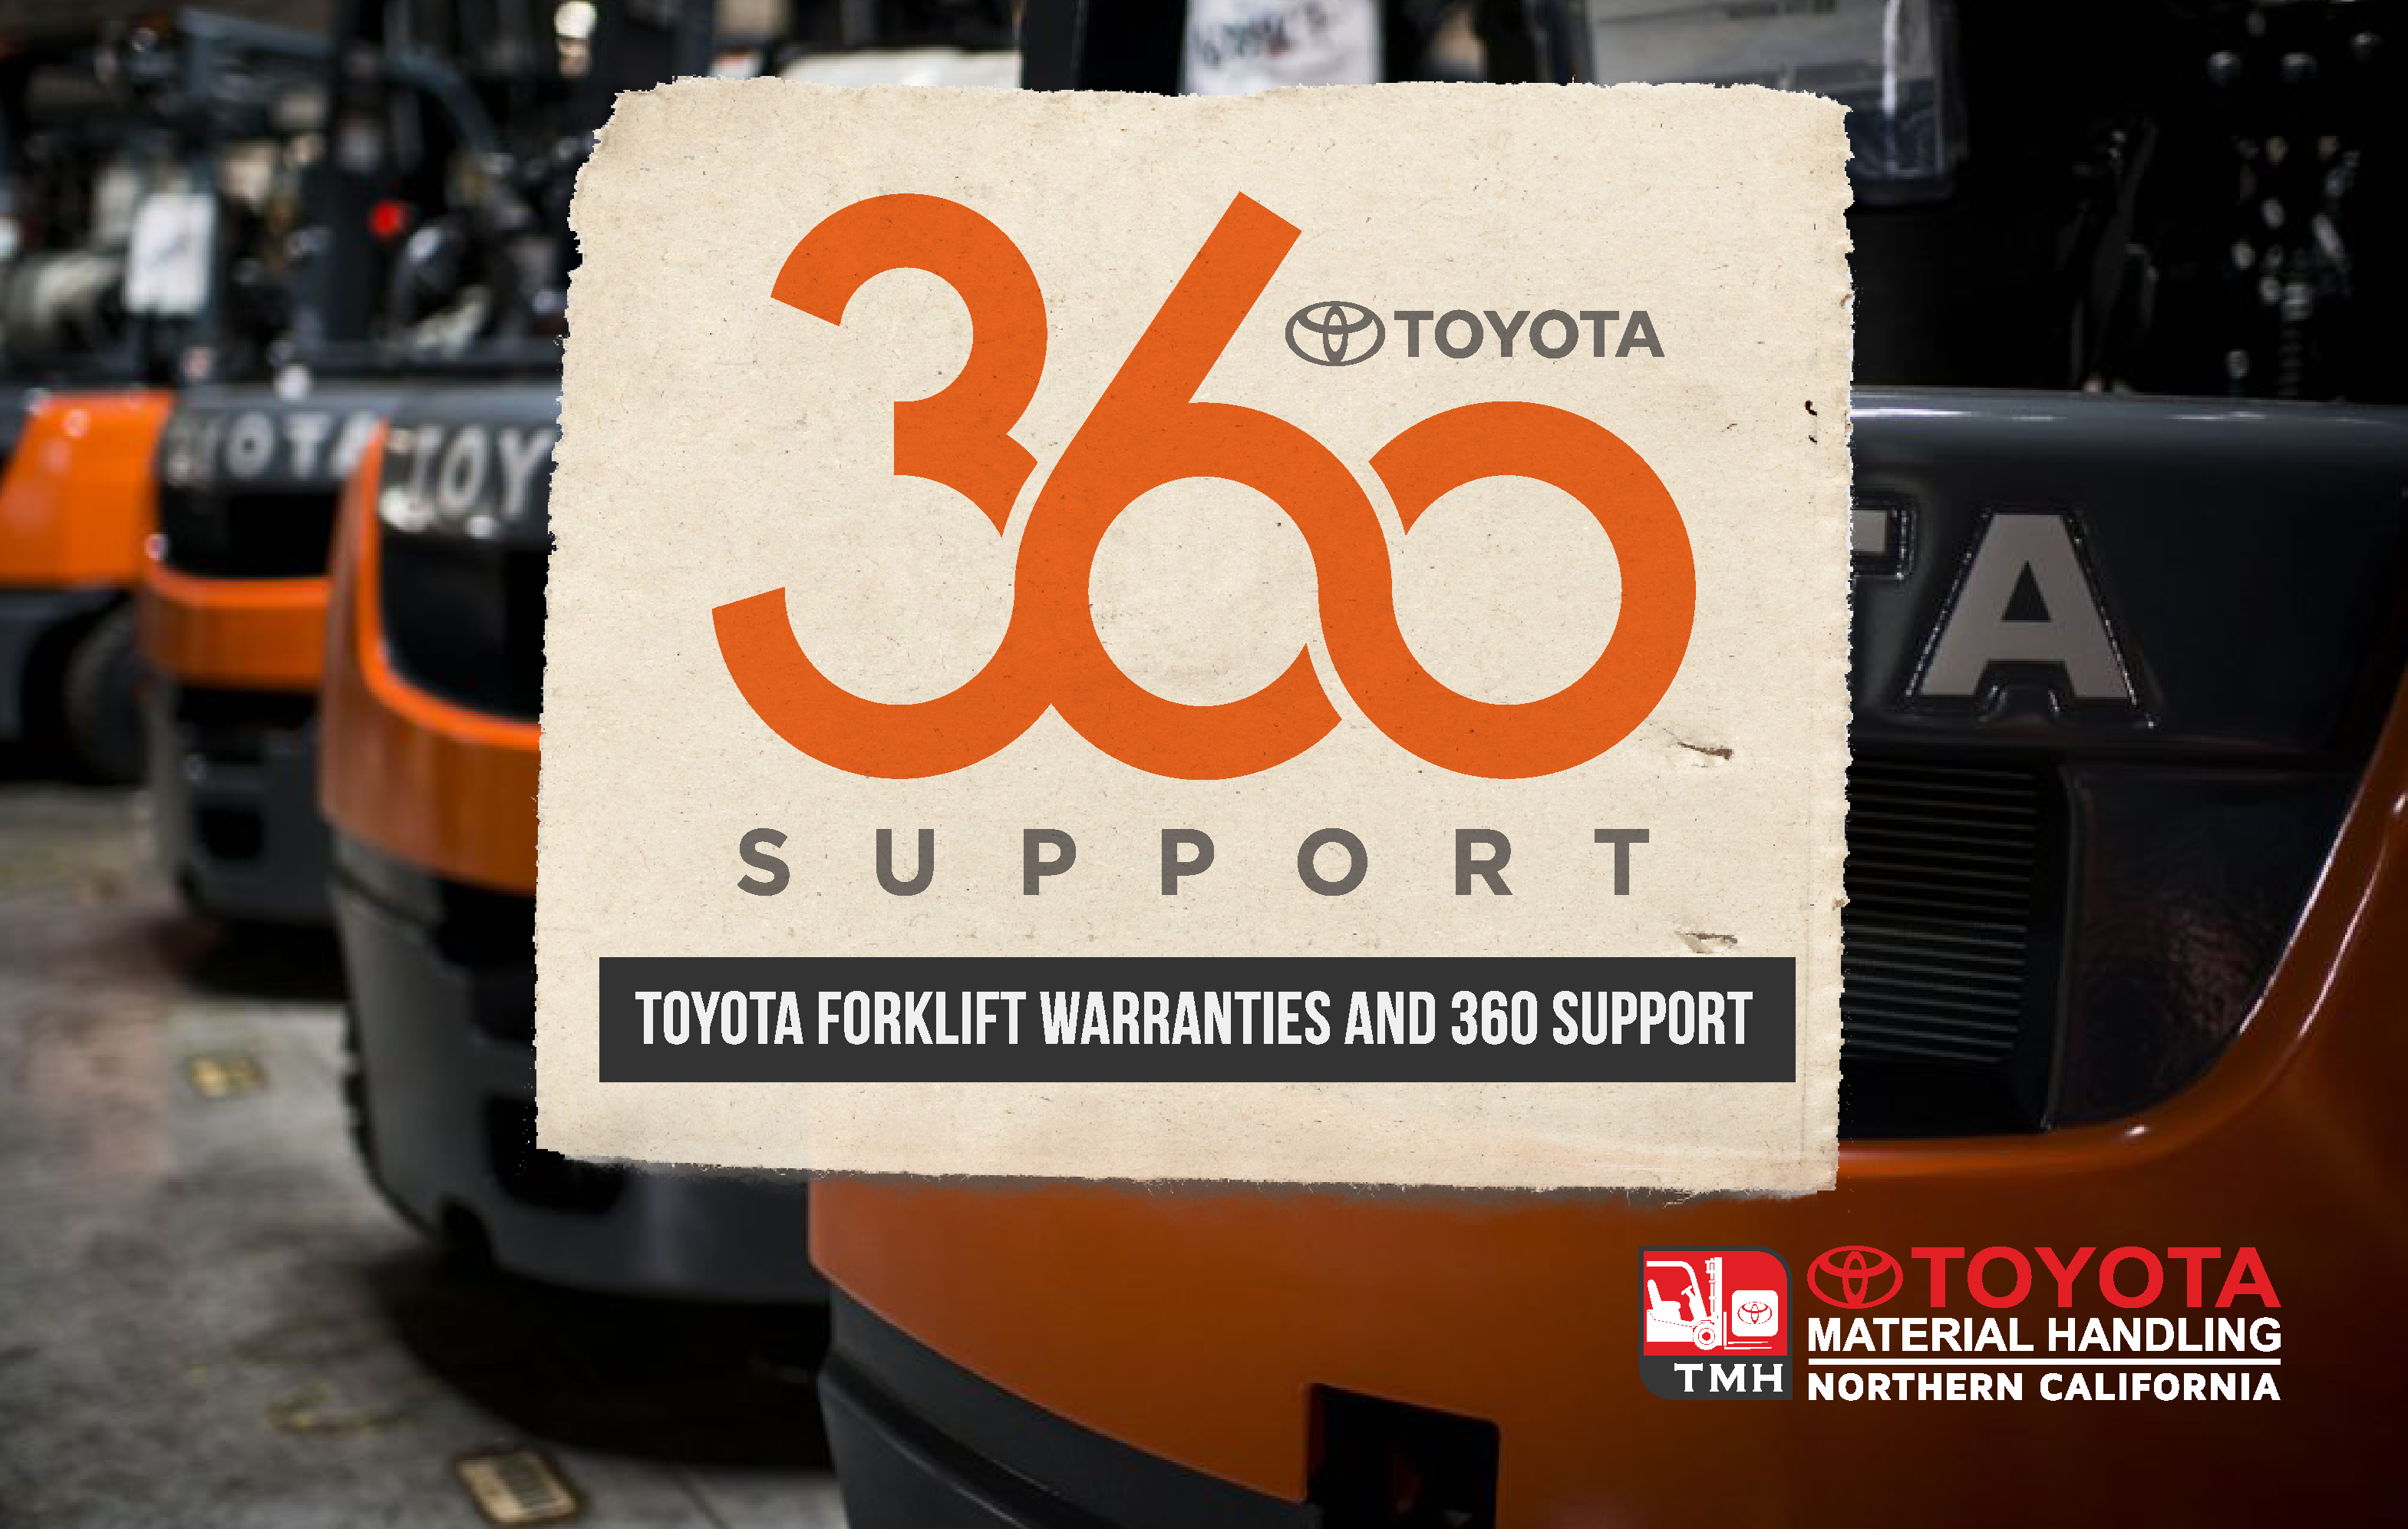 toyota forklift warranties and 360 support